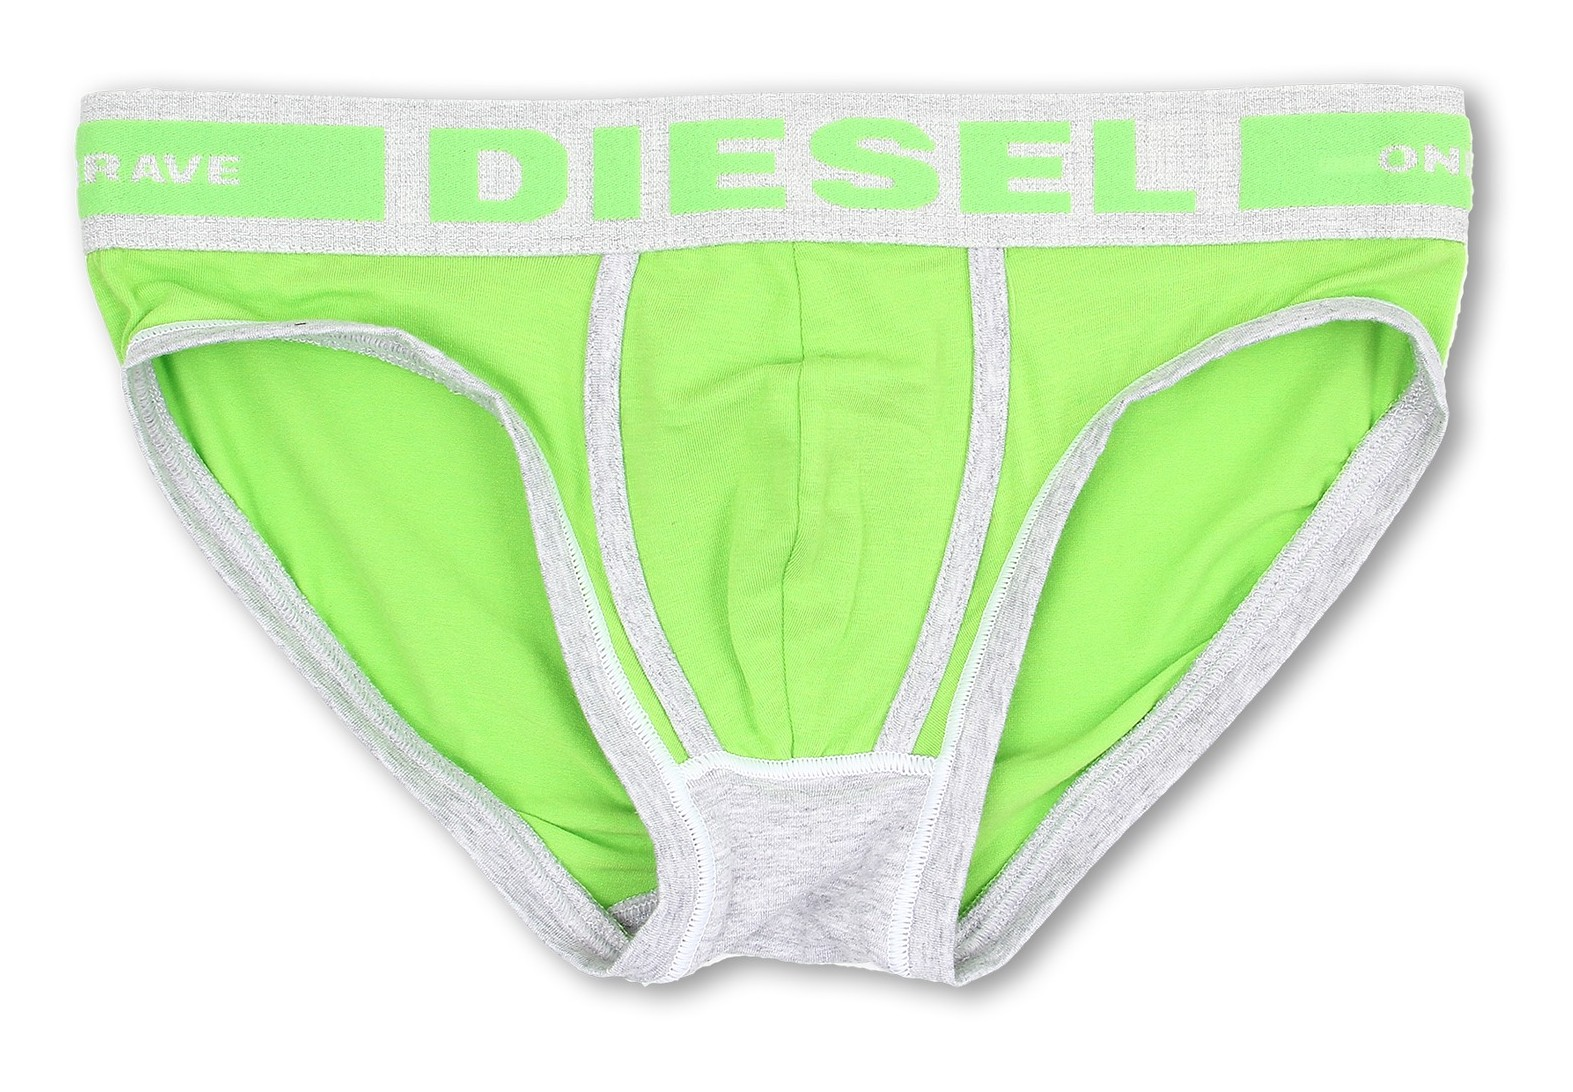 underpants green